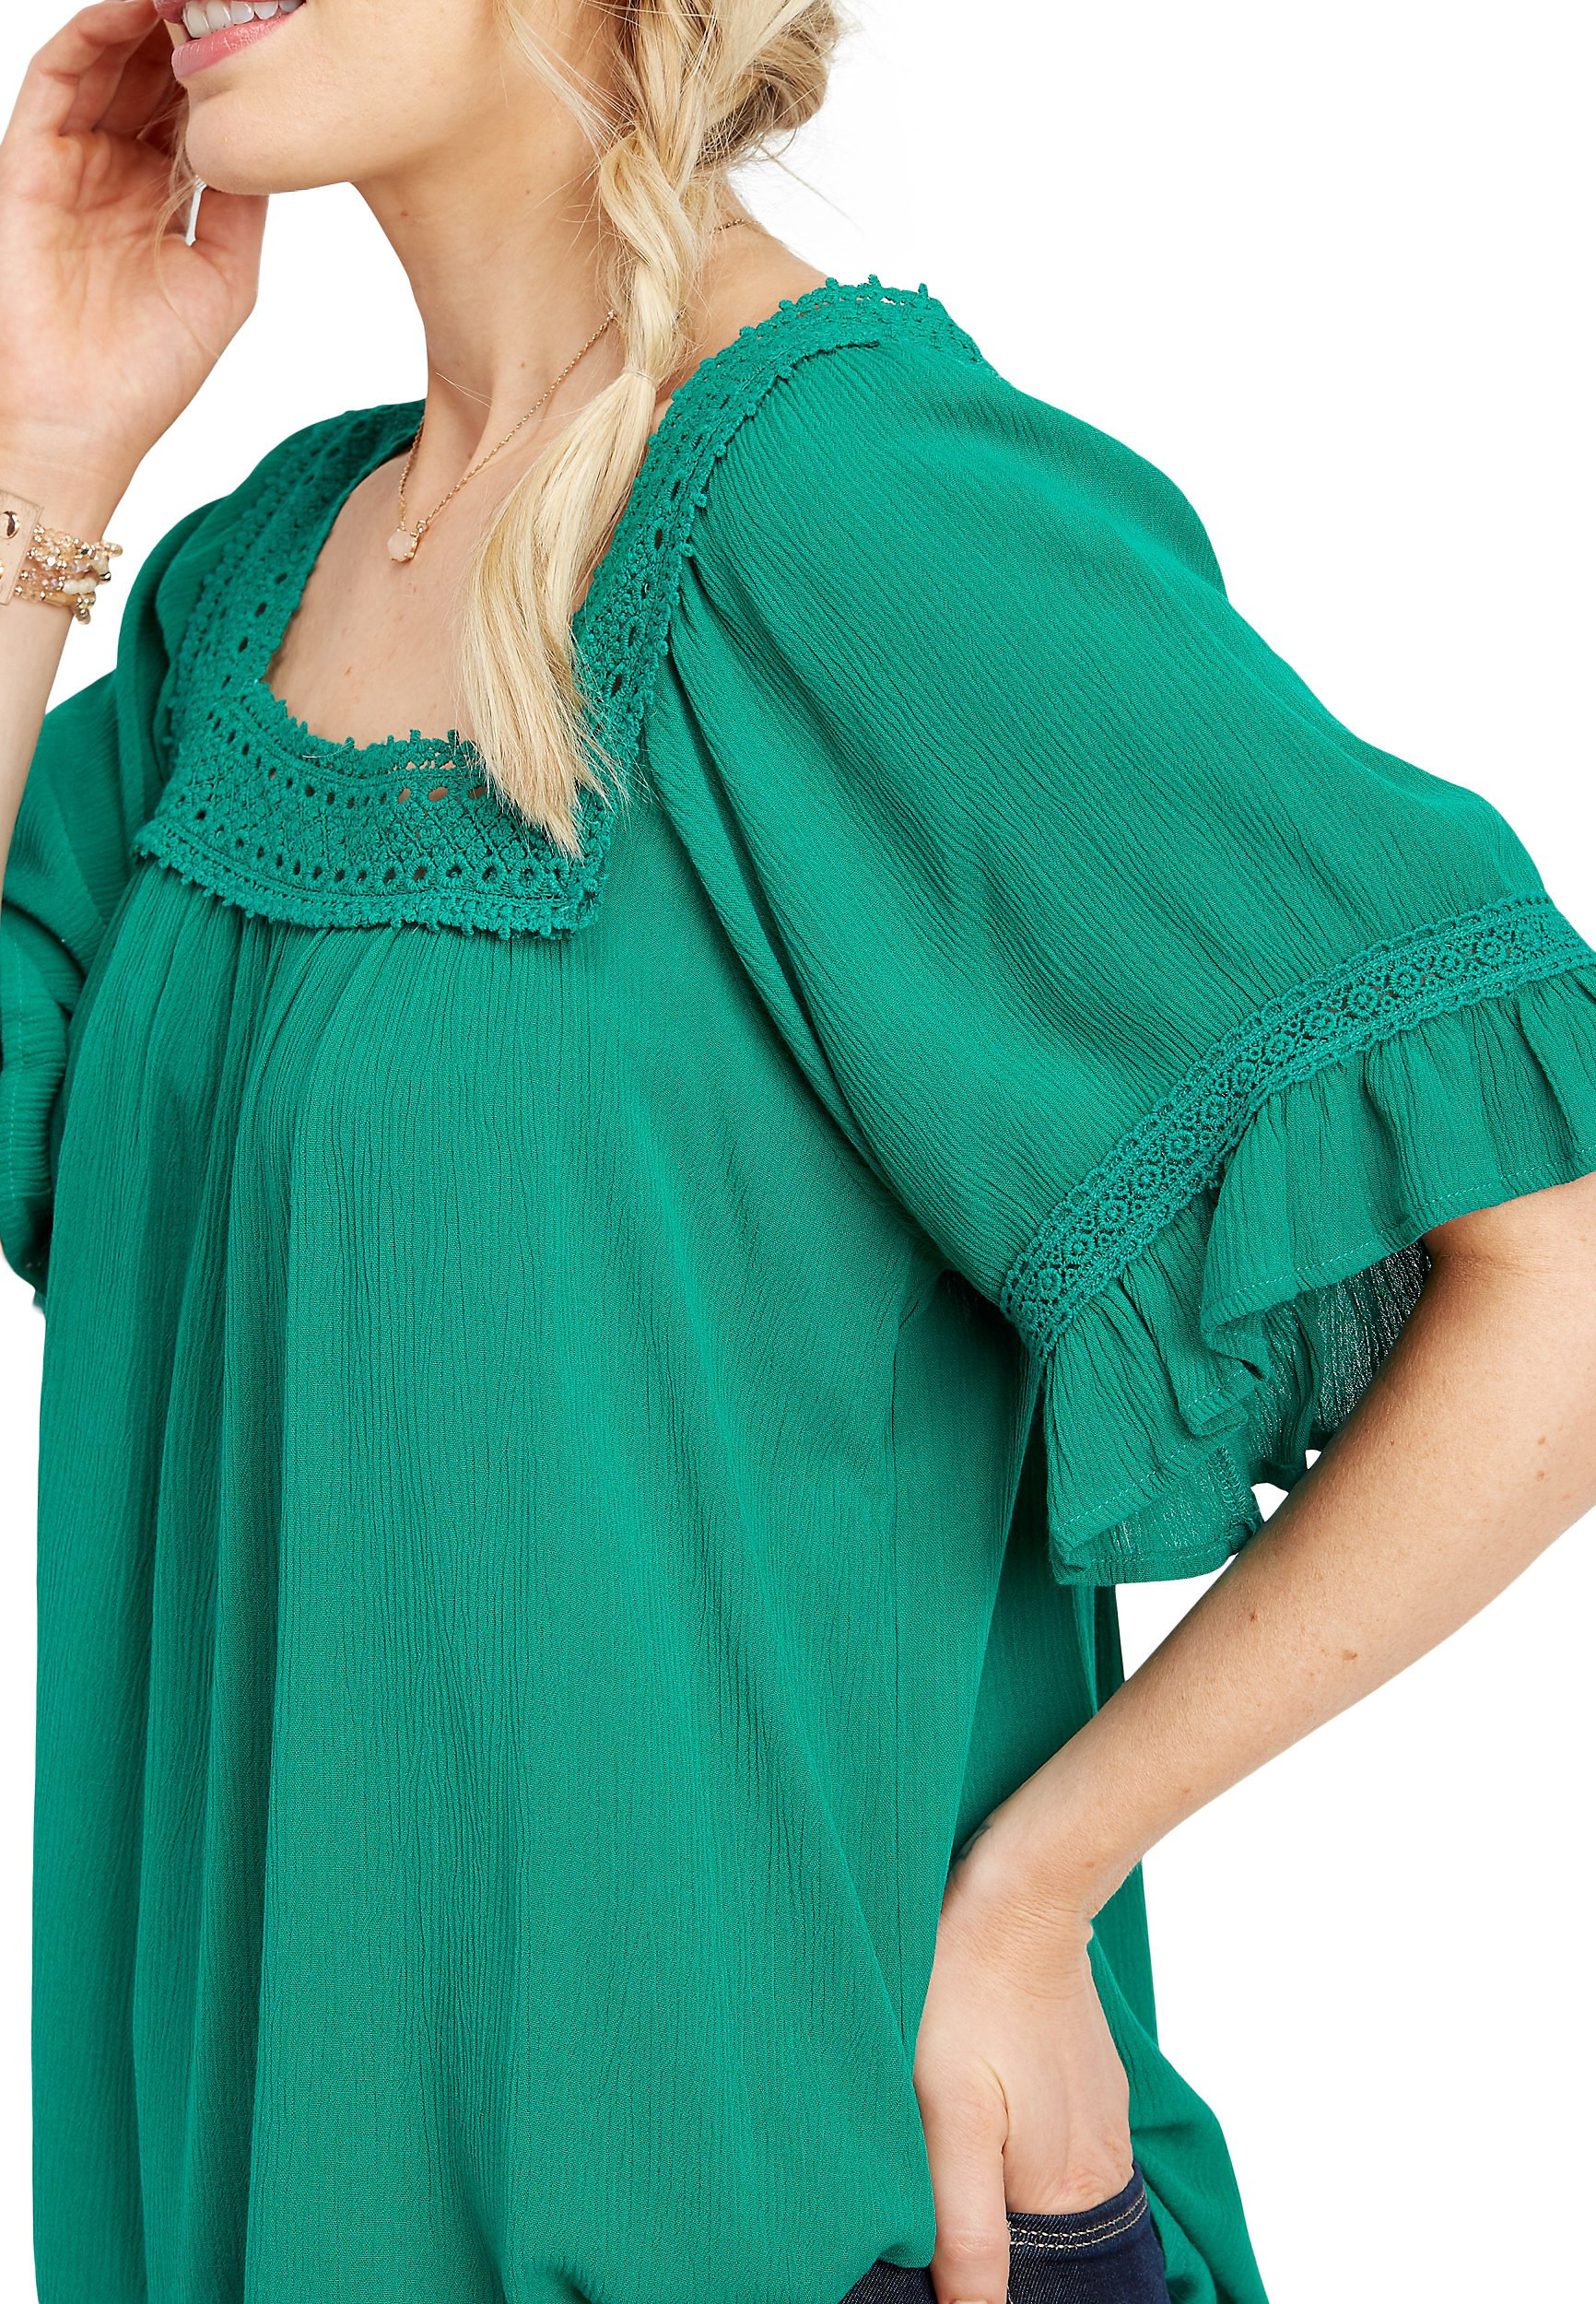 Crocheted Square Neck Top